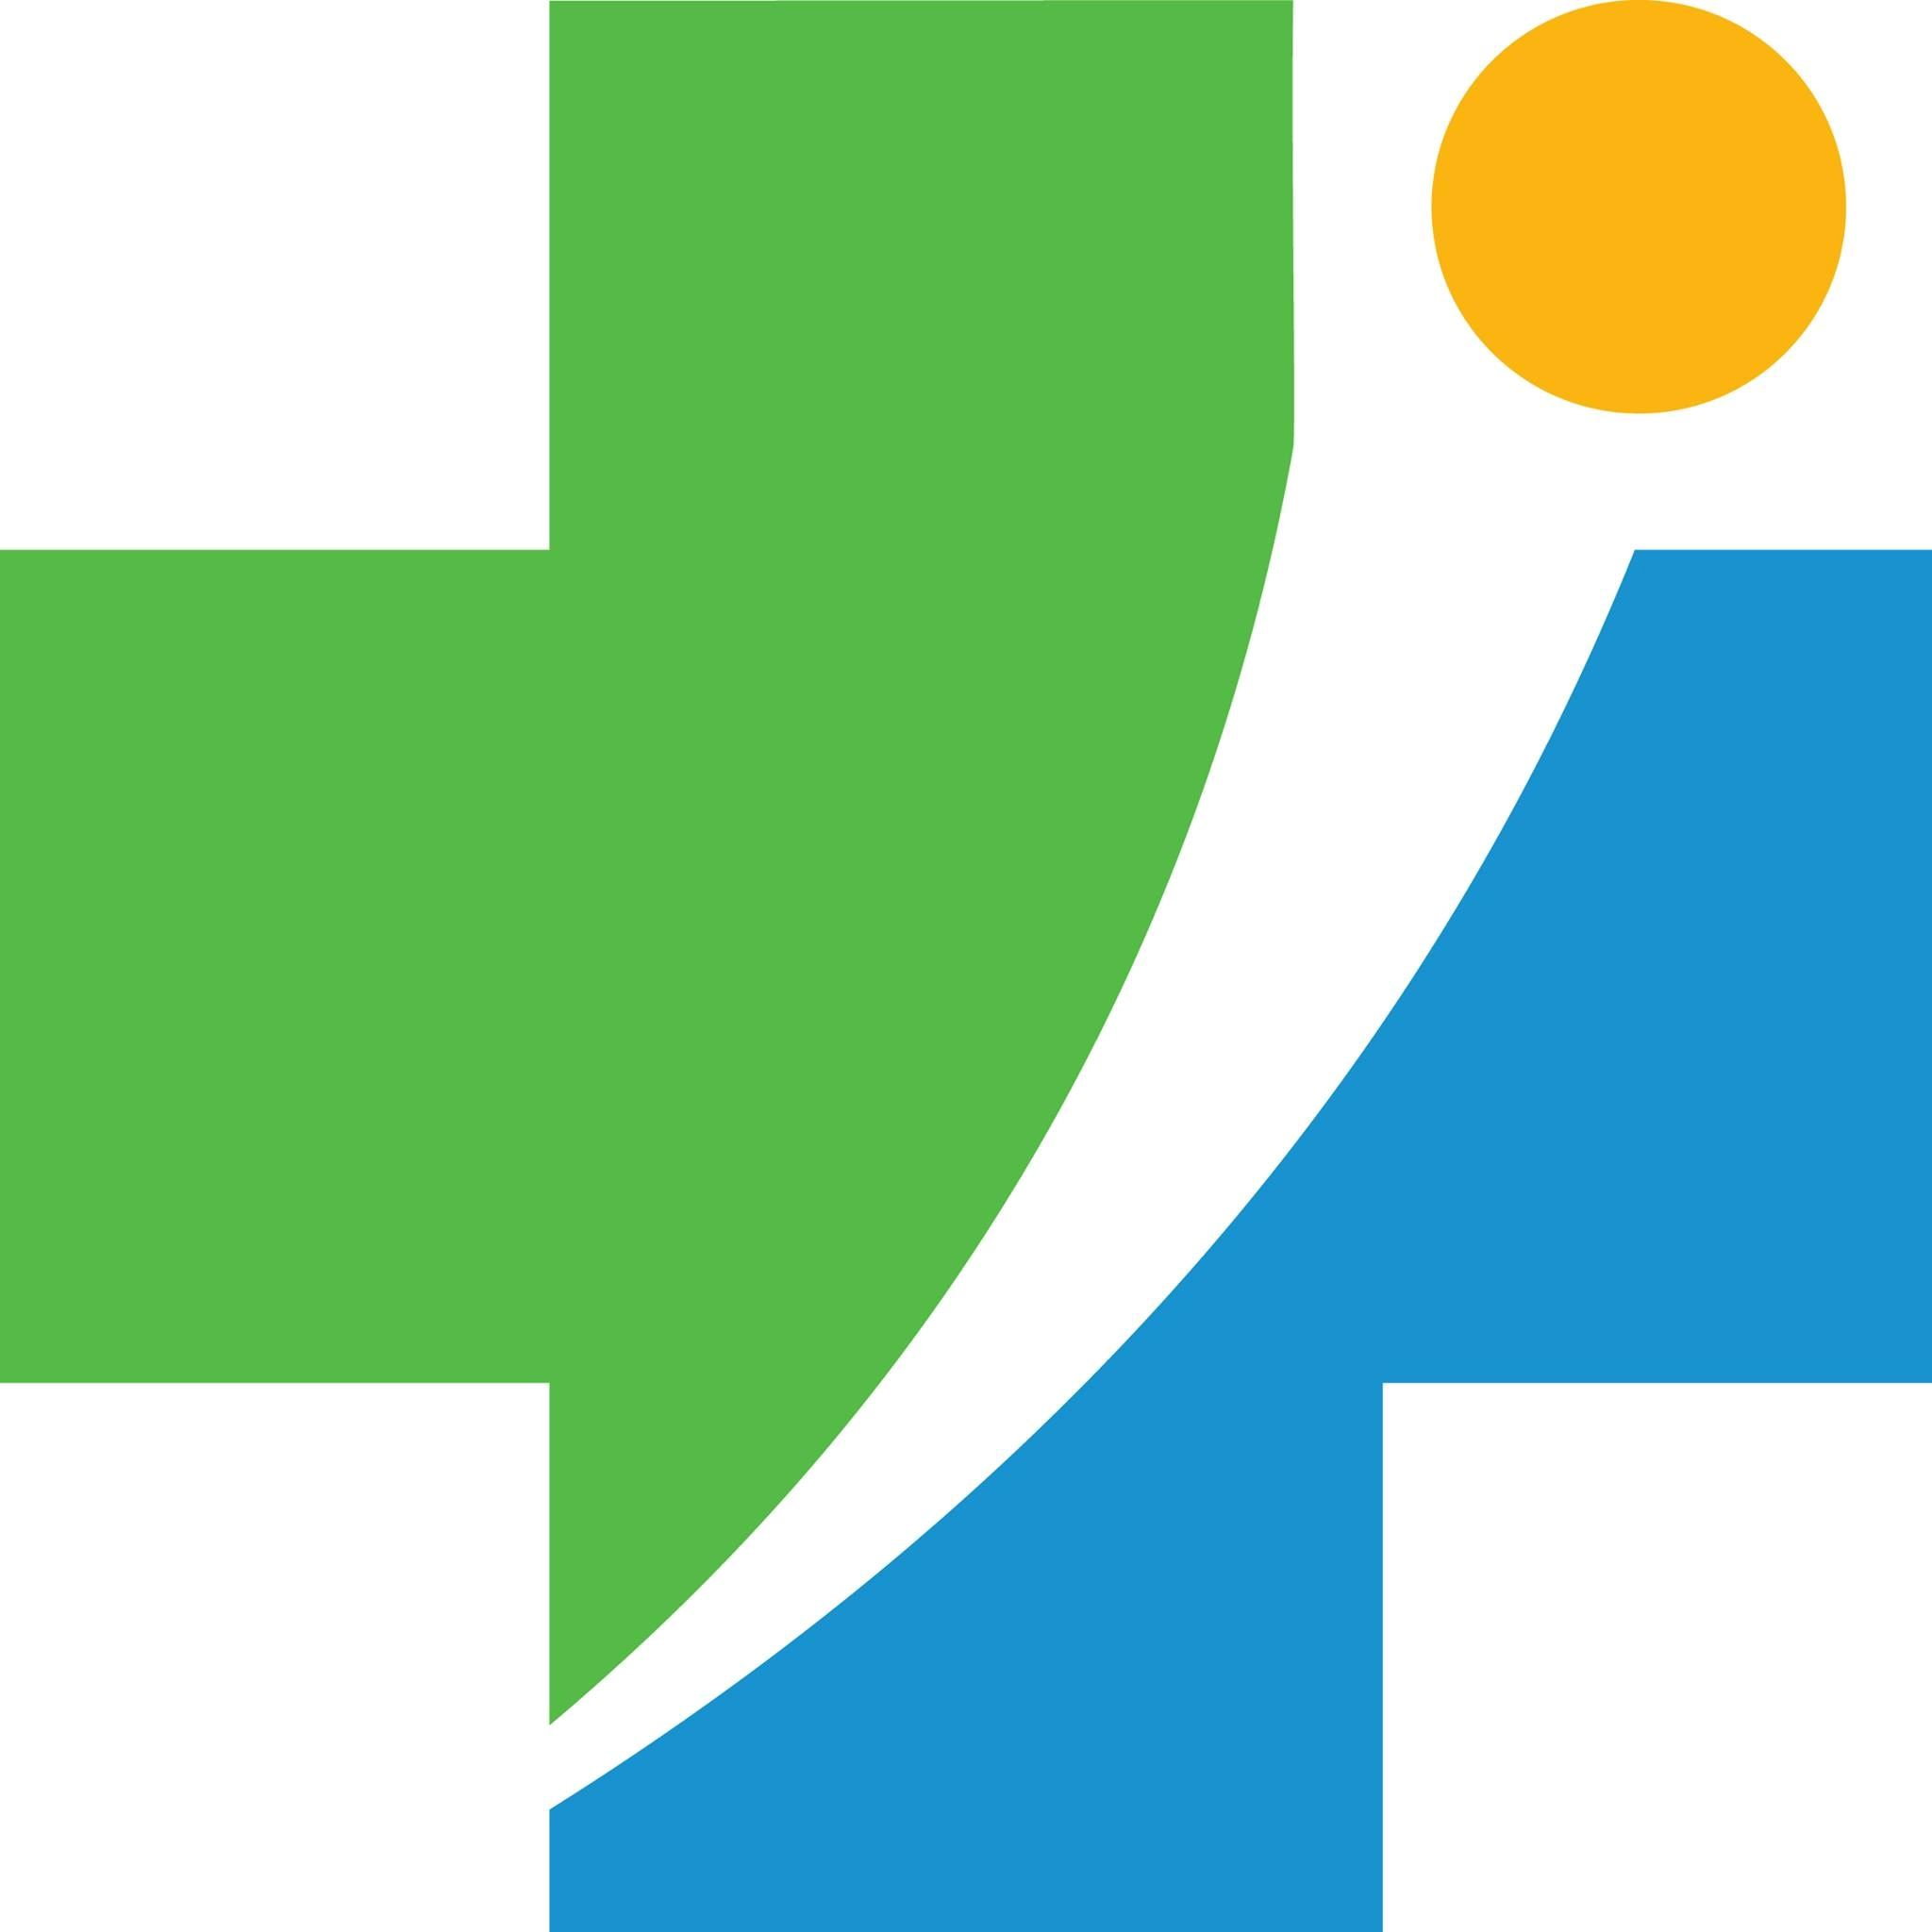 A blue, orange and green logo for Holyoke Medical Center